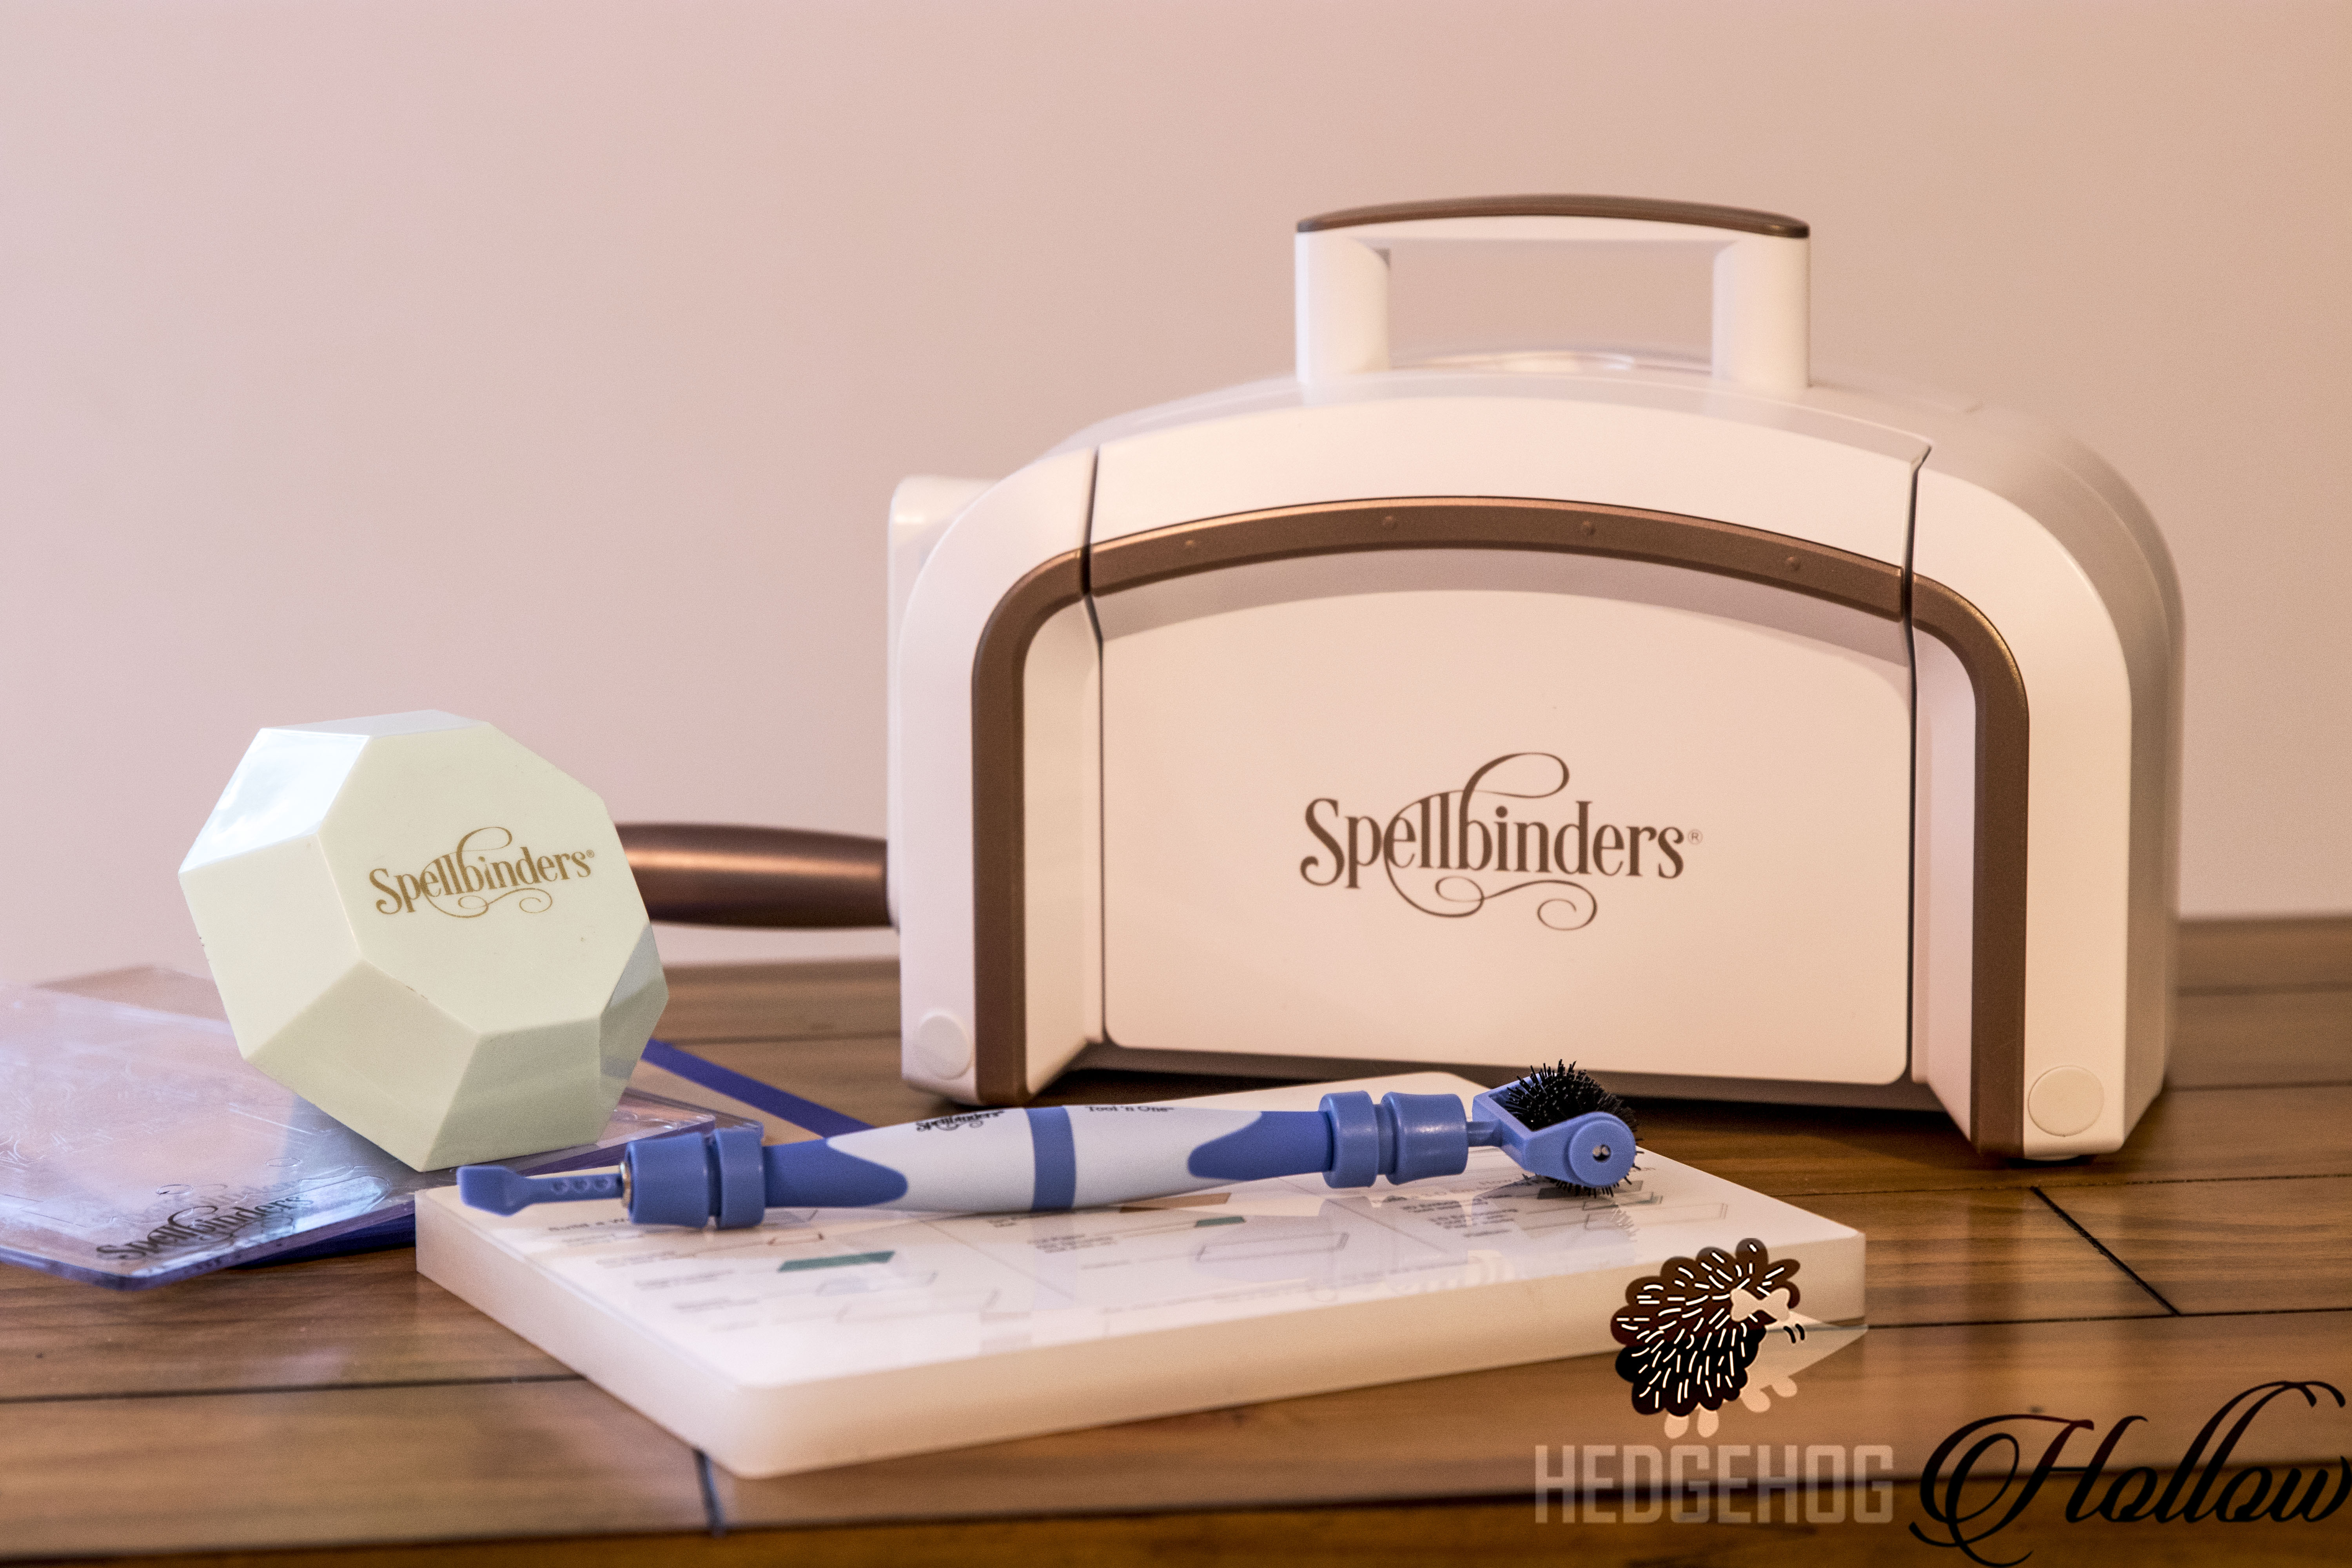 Spellbinders Platinum 6 Mini Series